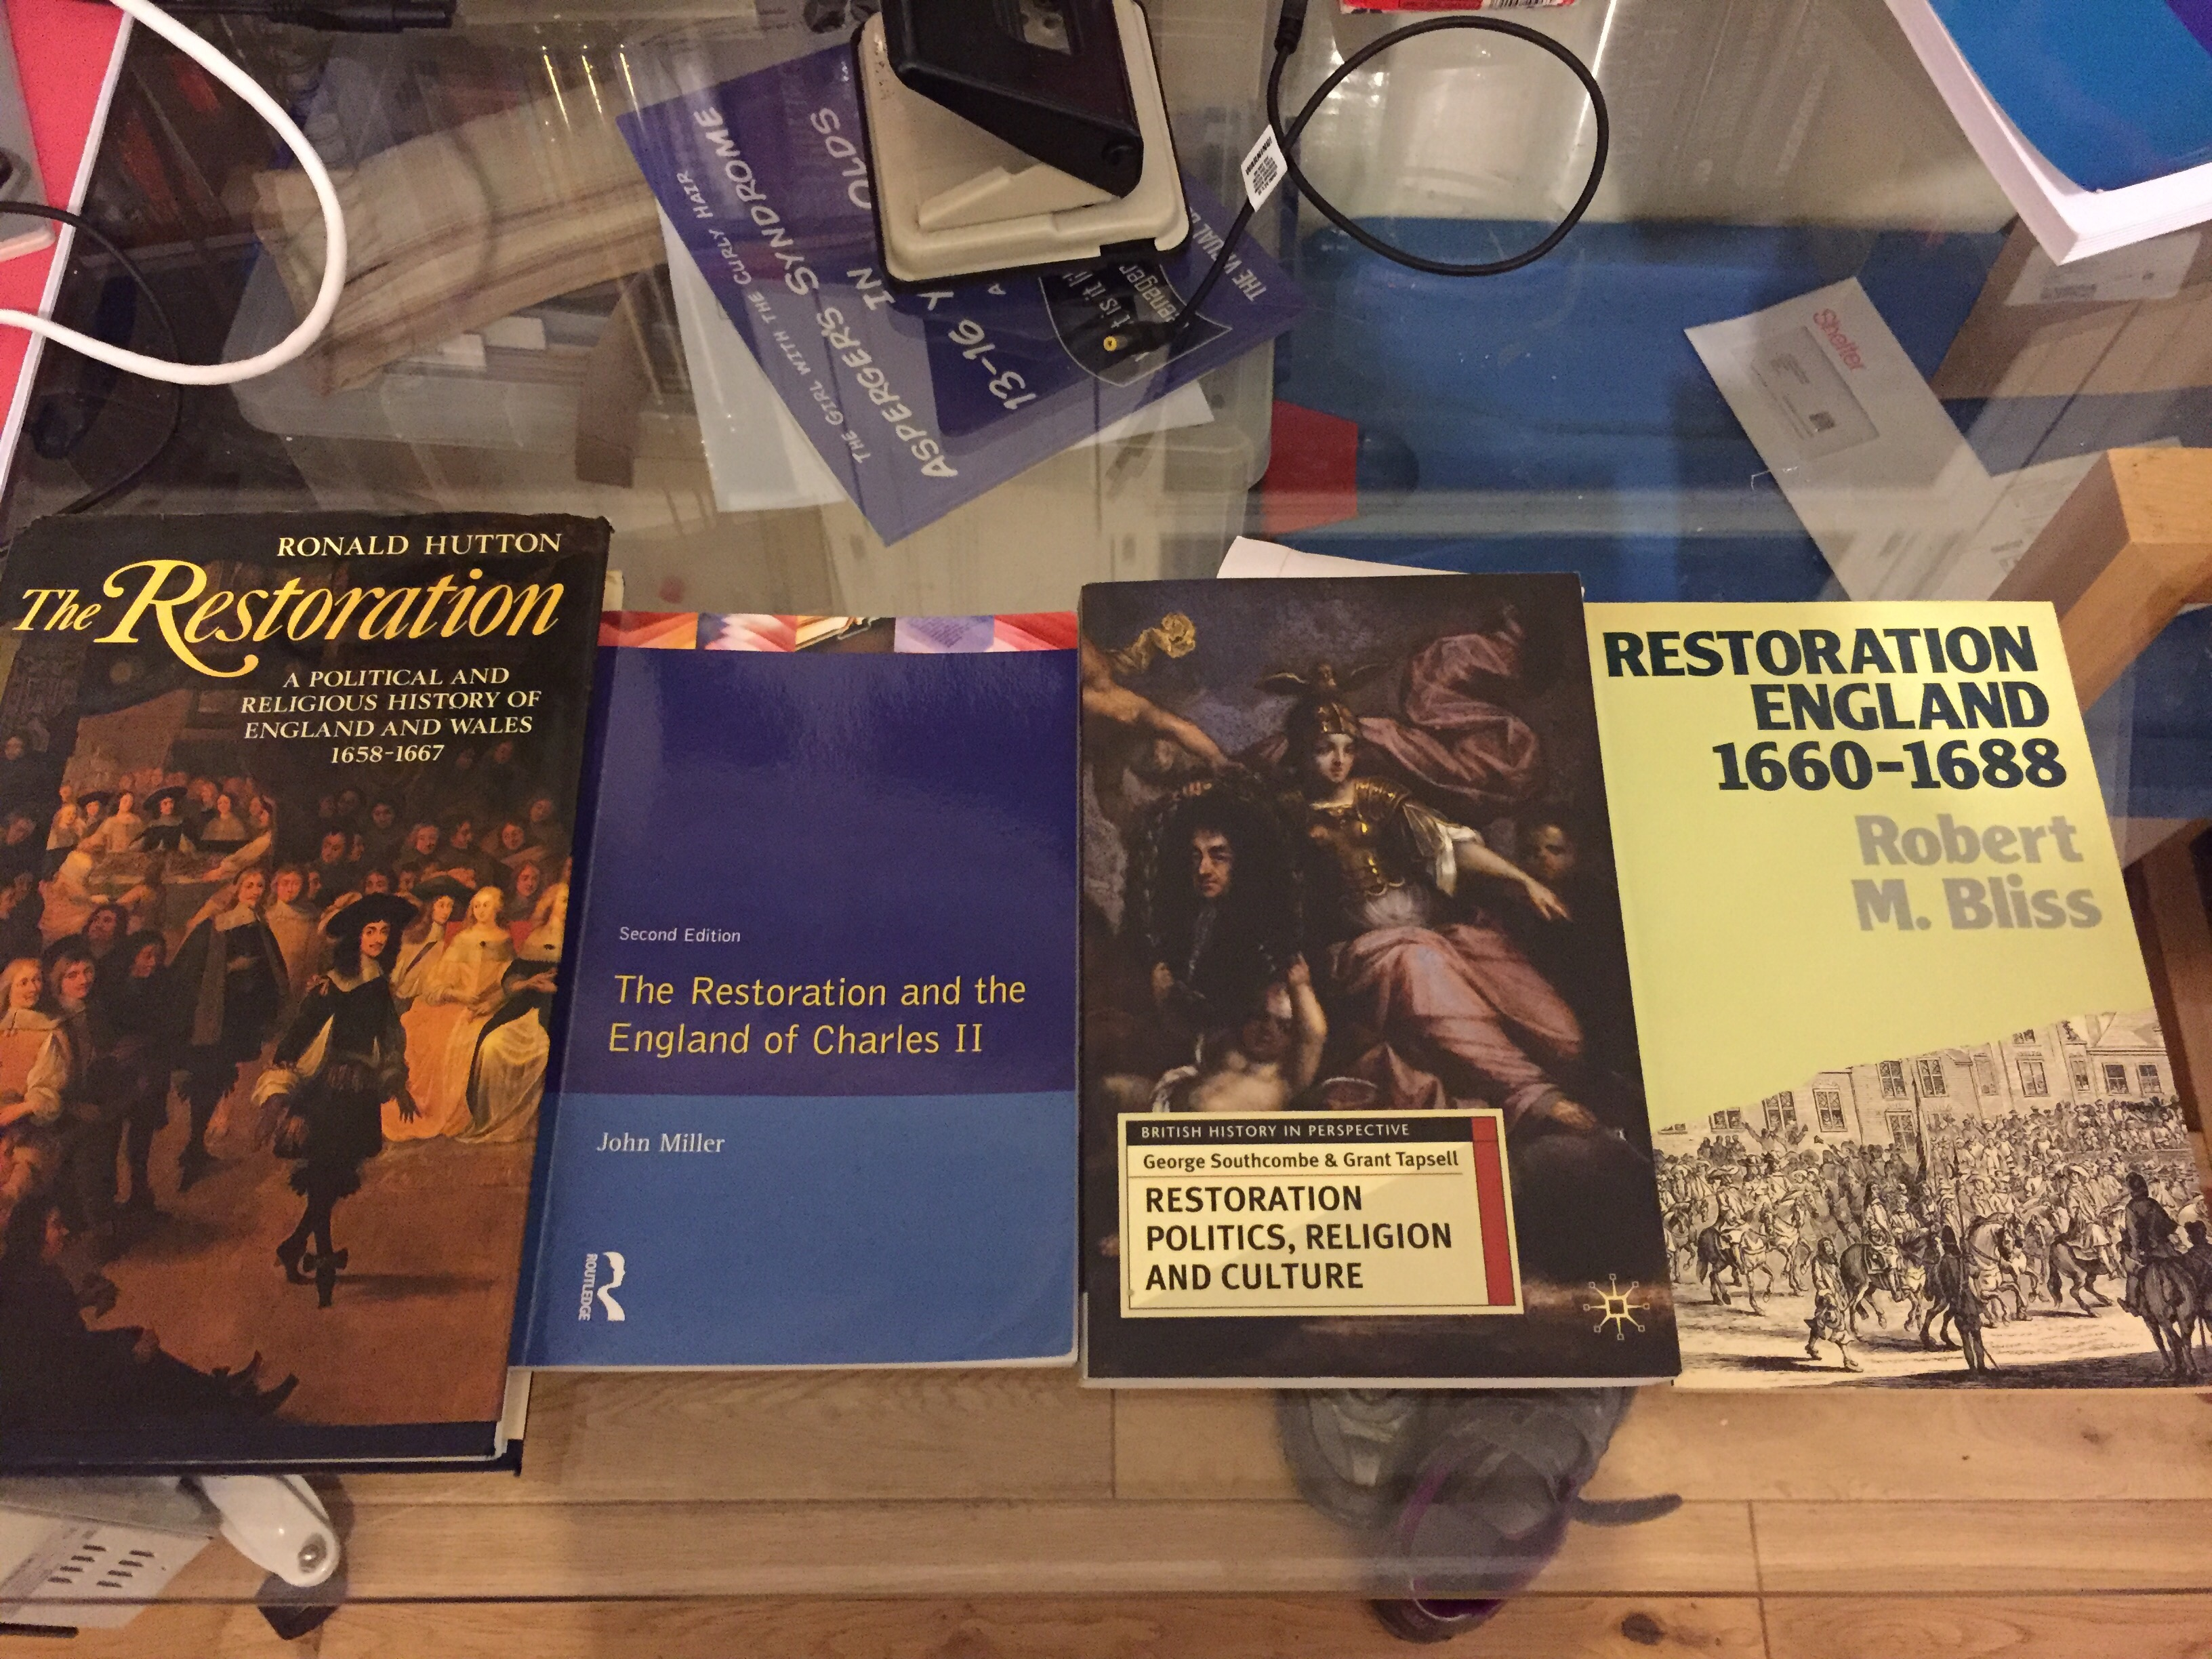 research paper on religion and politics Religion and politics historically, religion and politics have always played a very significant part in our everyday lives, dating back to the ancient pharaohs of africa to our modern day society, religion have had a profound effect on our existence as a society.